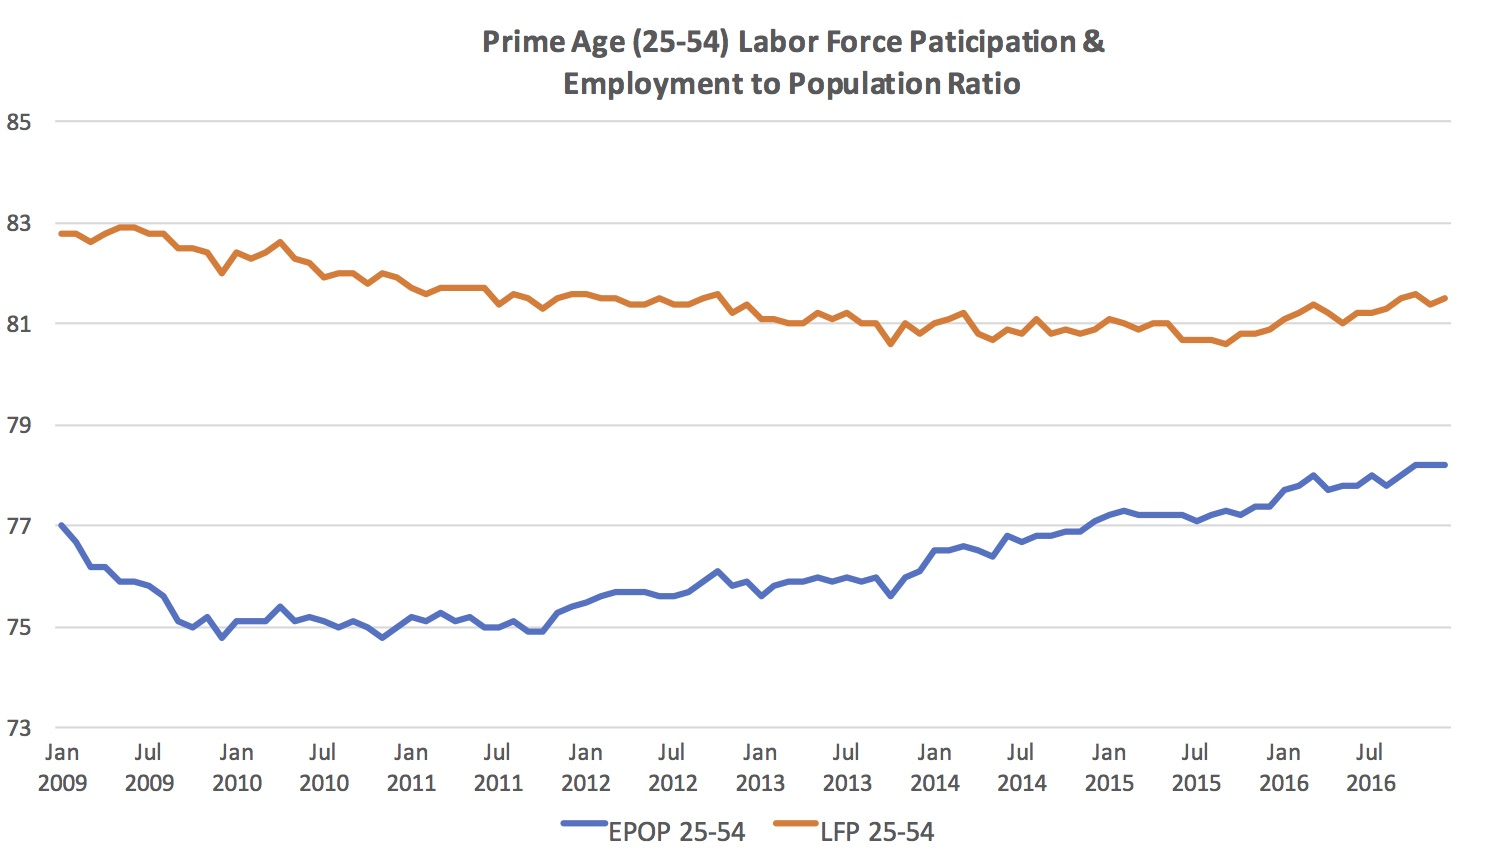 Prime Age Labor Force Participation